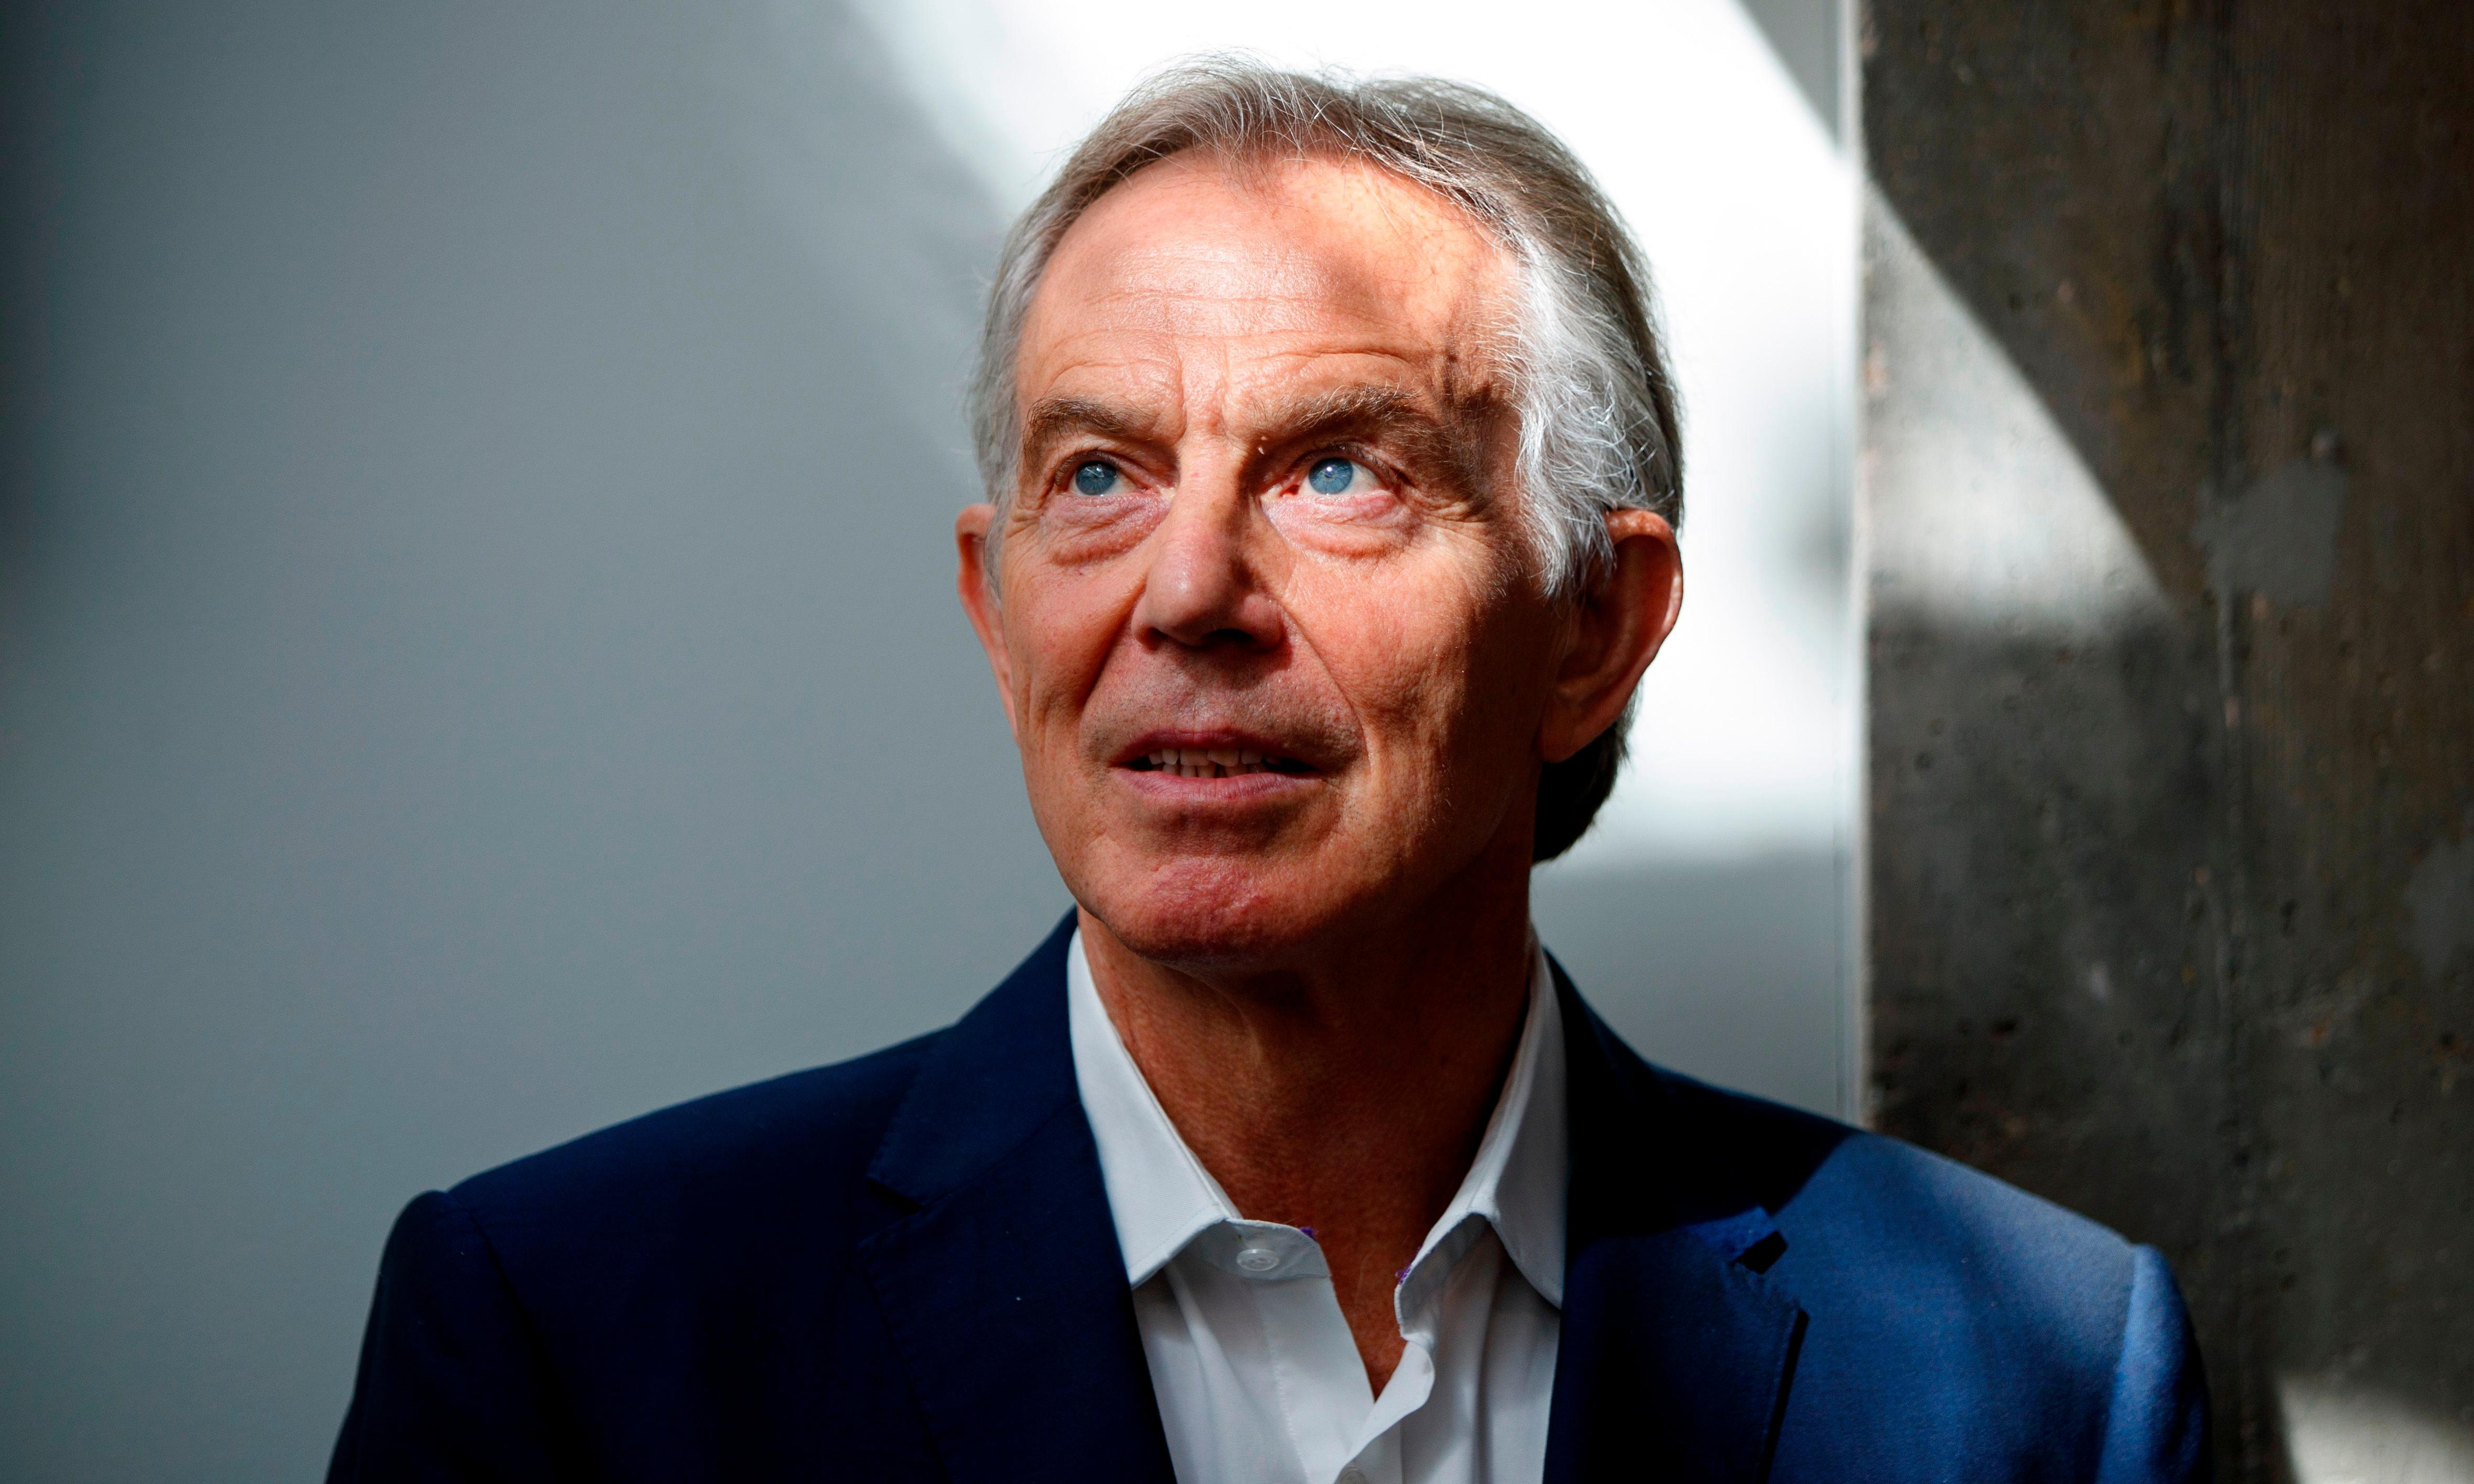 Tony Blair and the left's perverse preference for failure over success